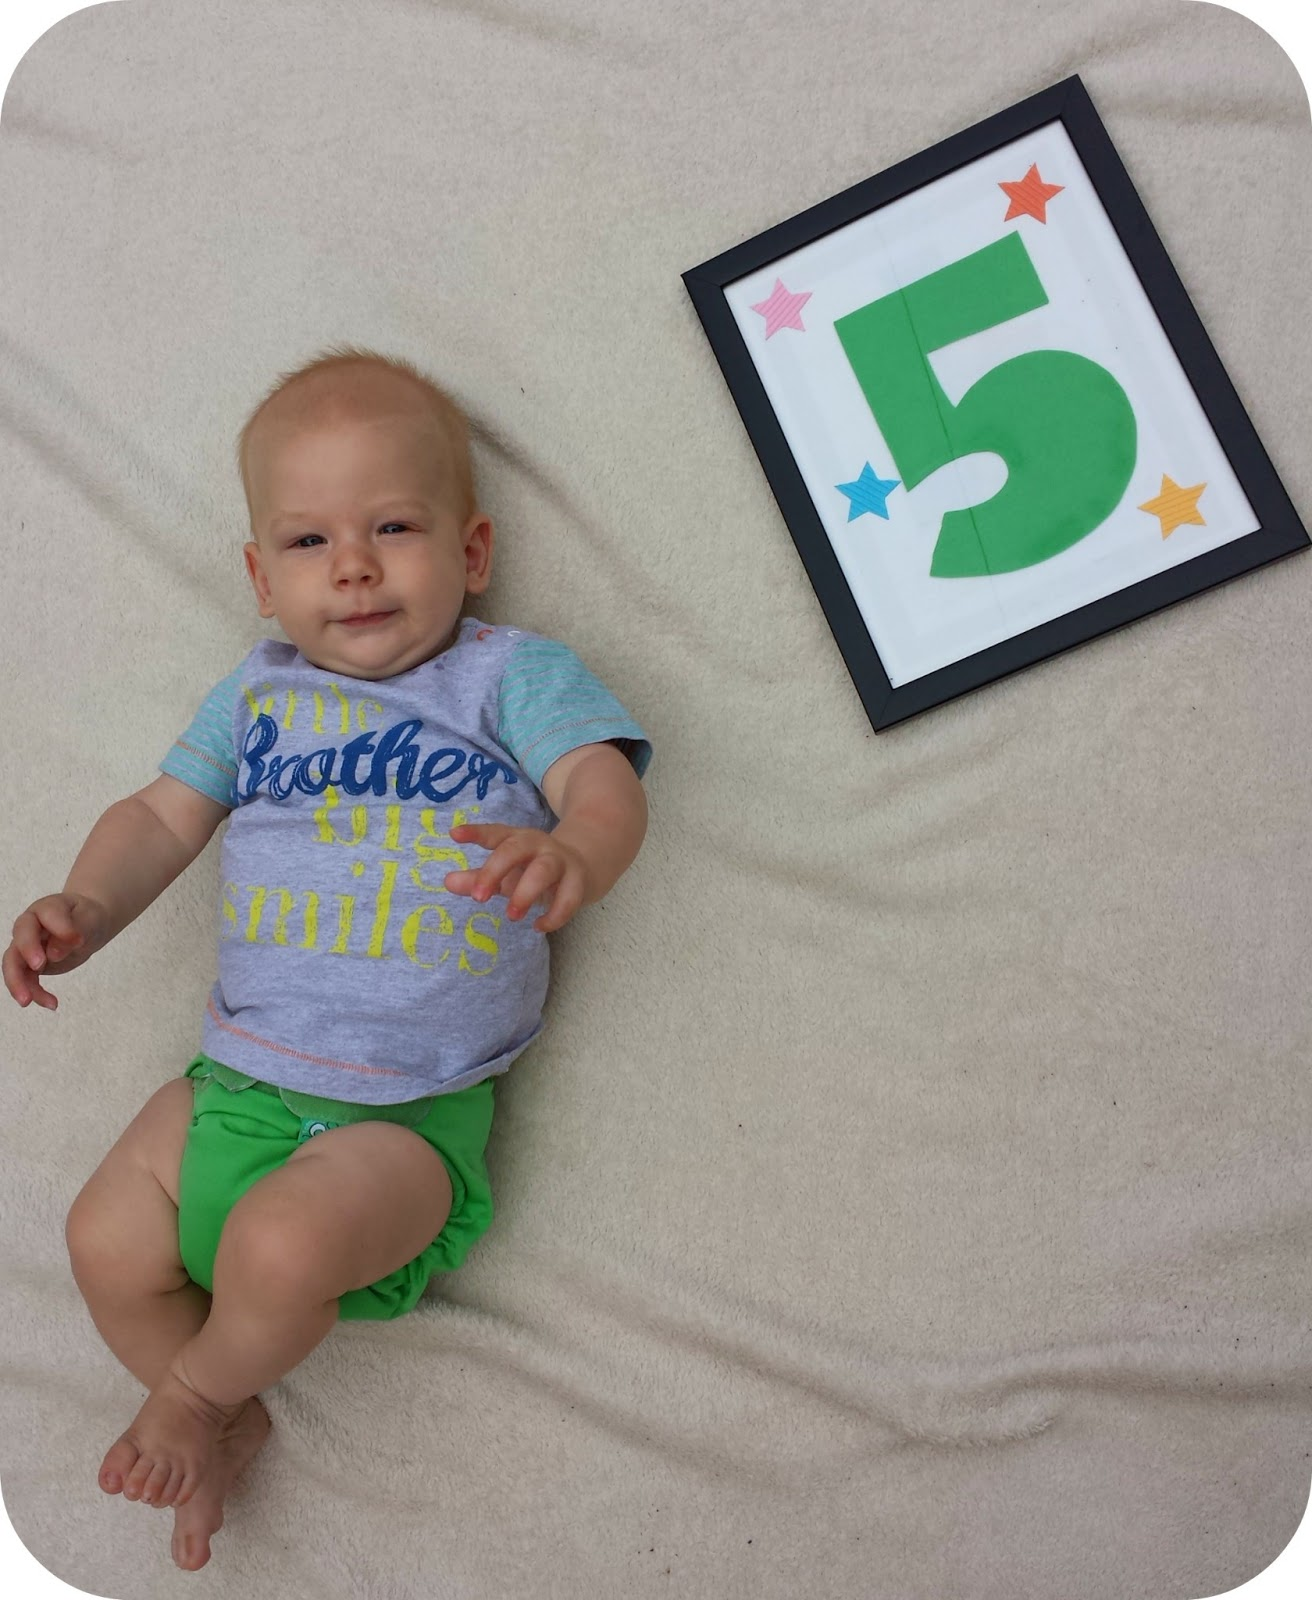 The Adventure Of Parenthood: 5 Months In